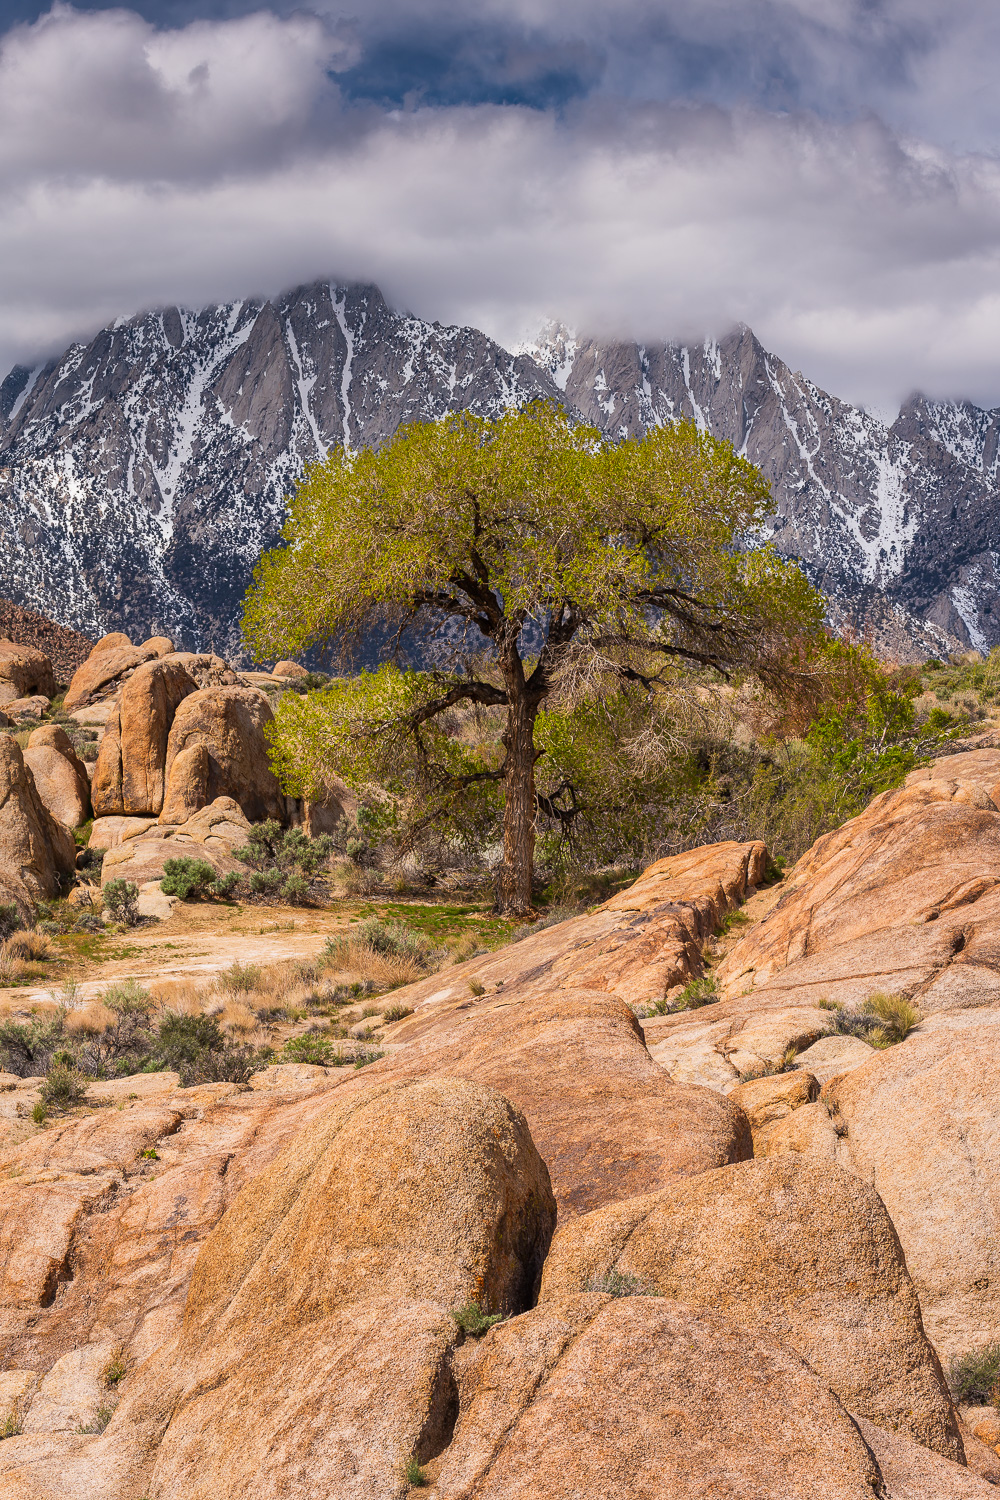 MAB-20190404-CA-ALABAMA-HILLS-TREE-70527.jpg